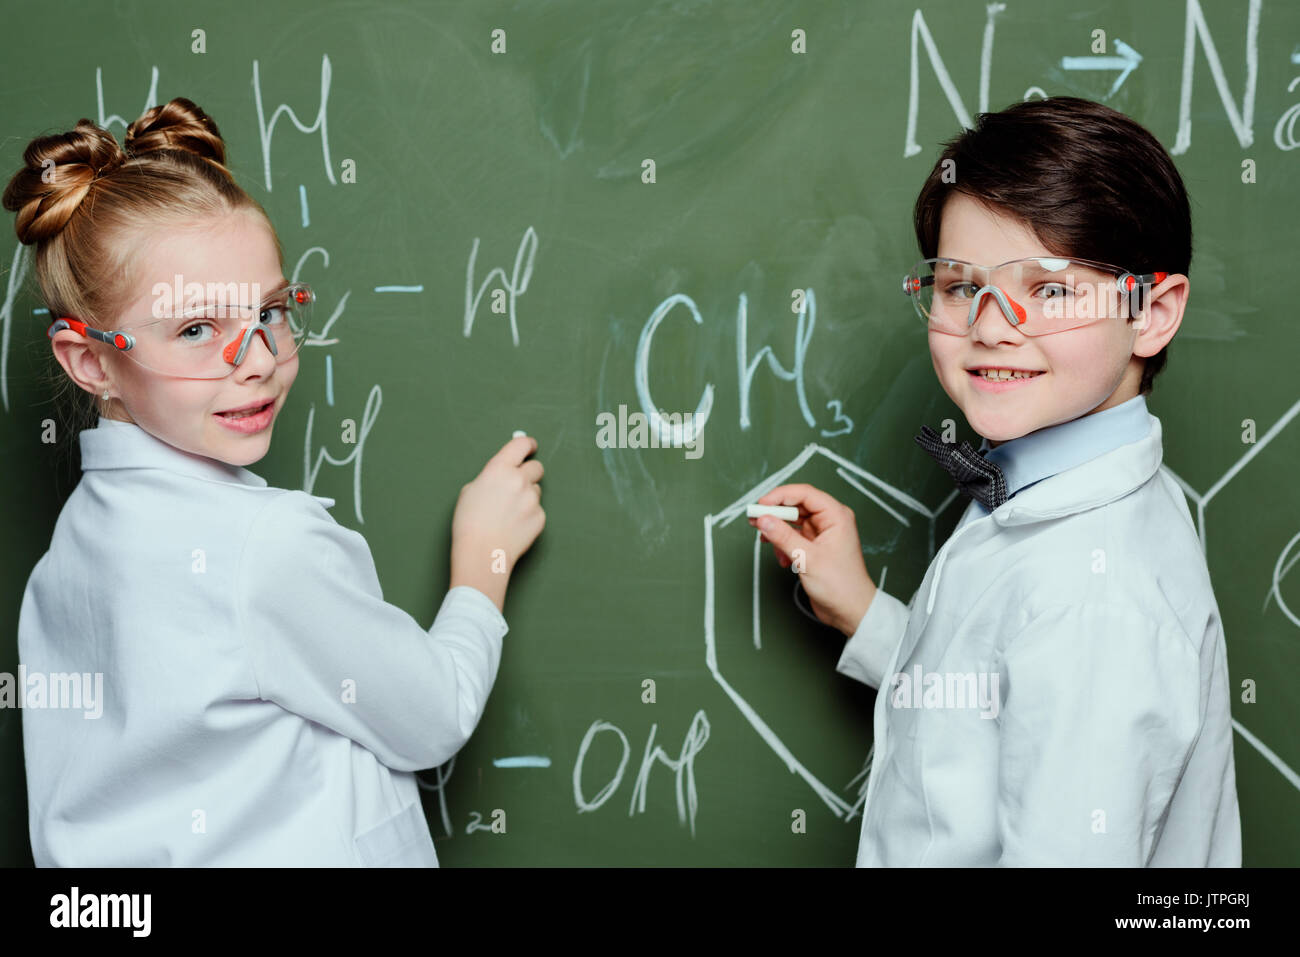 Schoolchildren in white coats and protective eyeglasses drawing chemical formulas on chalkboard and looking at camera, science school concept - Stock Image